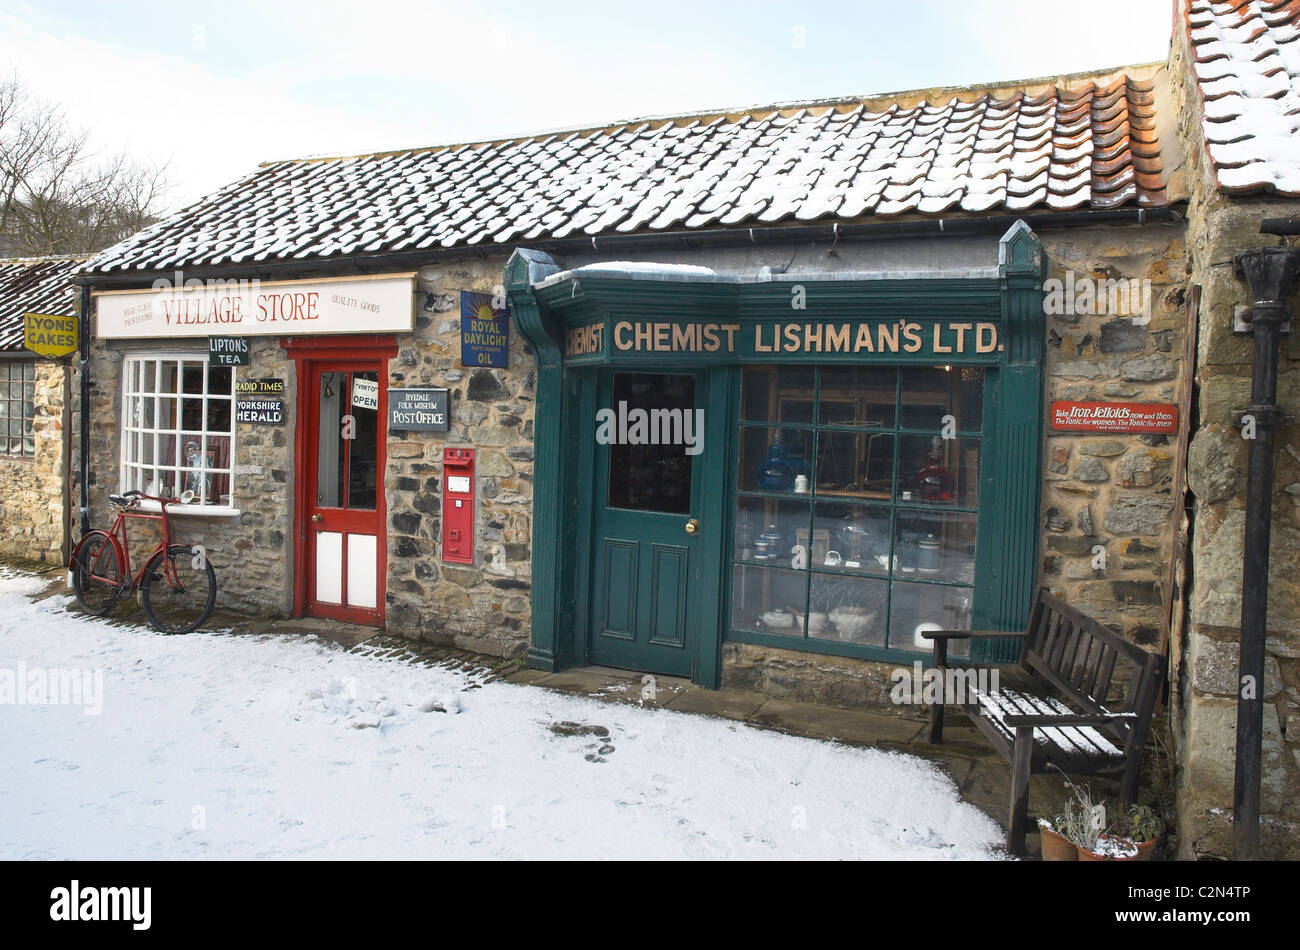 Village Shop and Chemist at the Ryedale Folk Museum, Hutton-Le-Hole - Stock Image